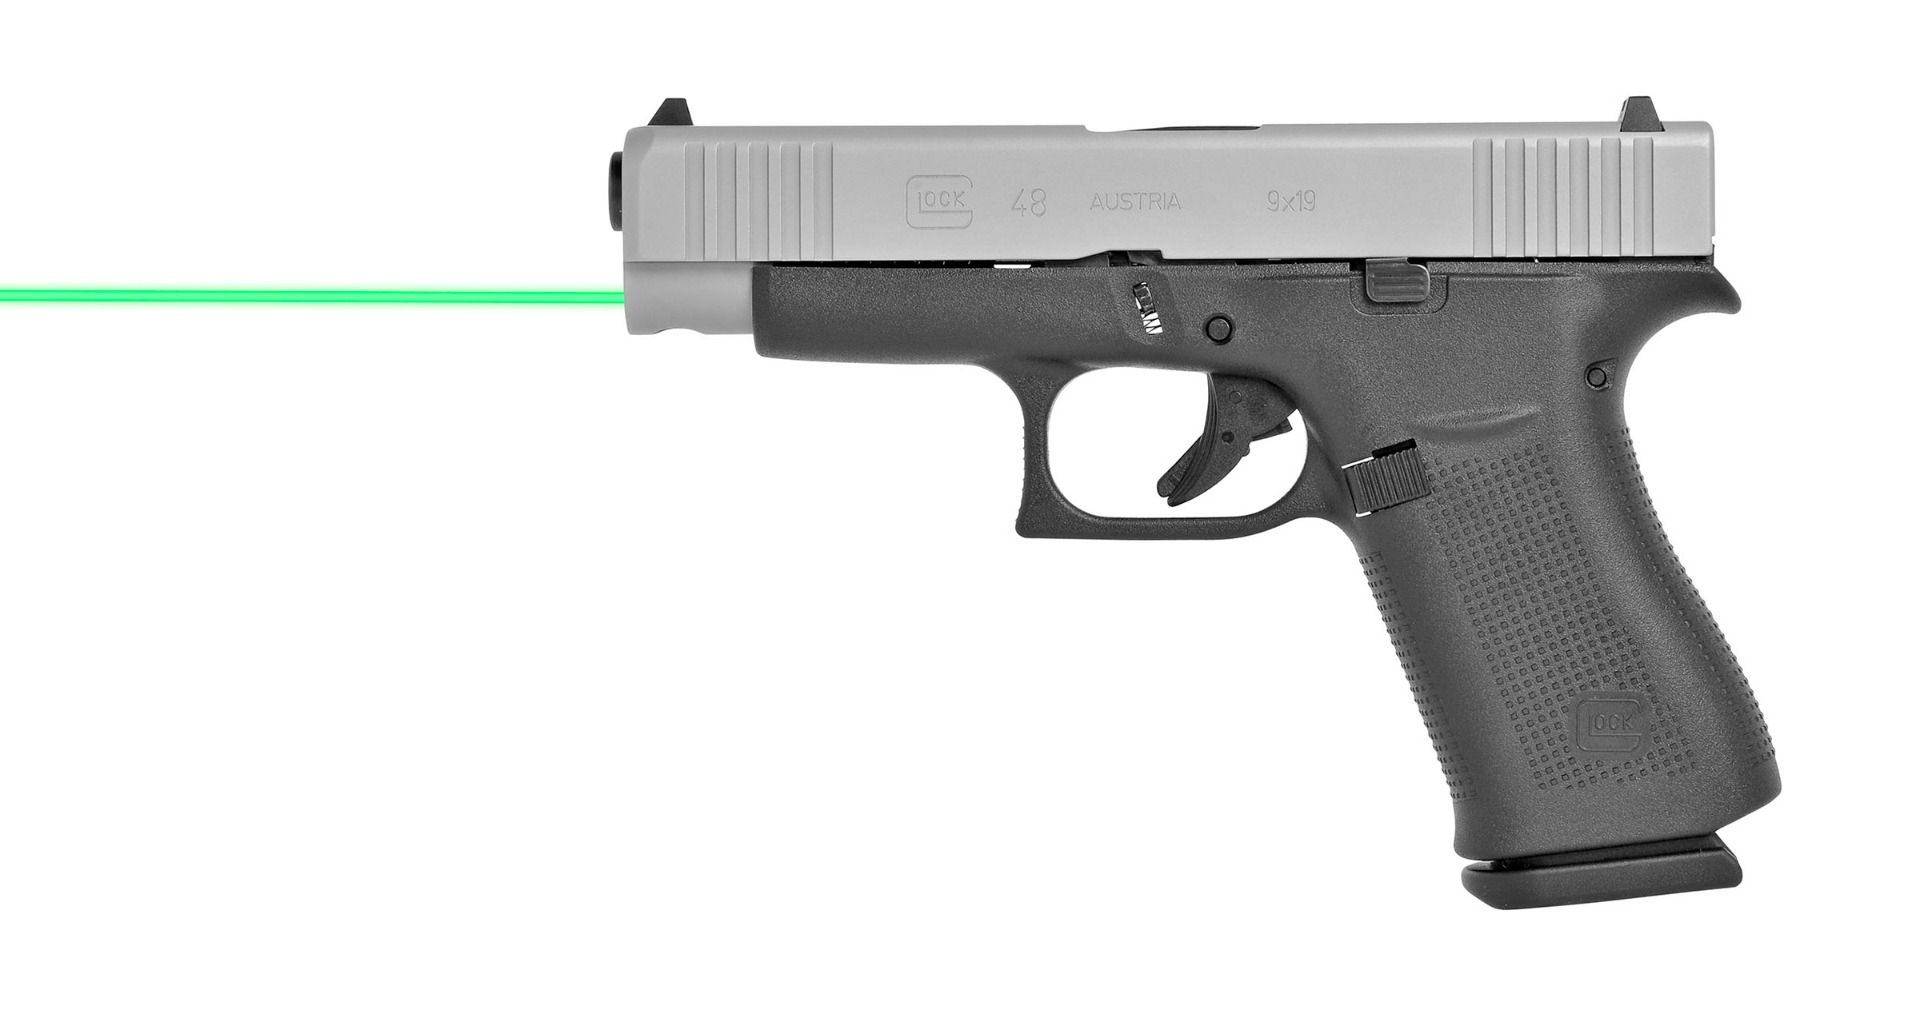 LASERMAX SHOWS SUPPORT FOR GLOCK SLIMLINE PISTOLS WITH NEW GREEN GUIDE ROD LASER